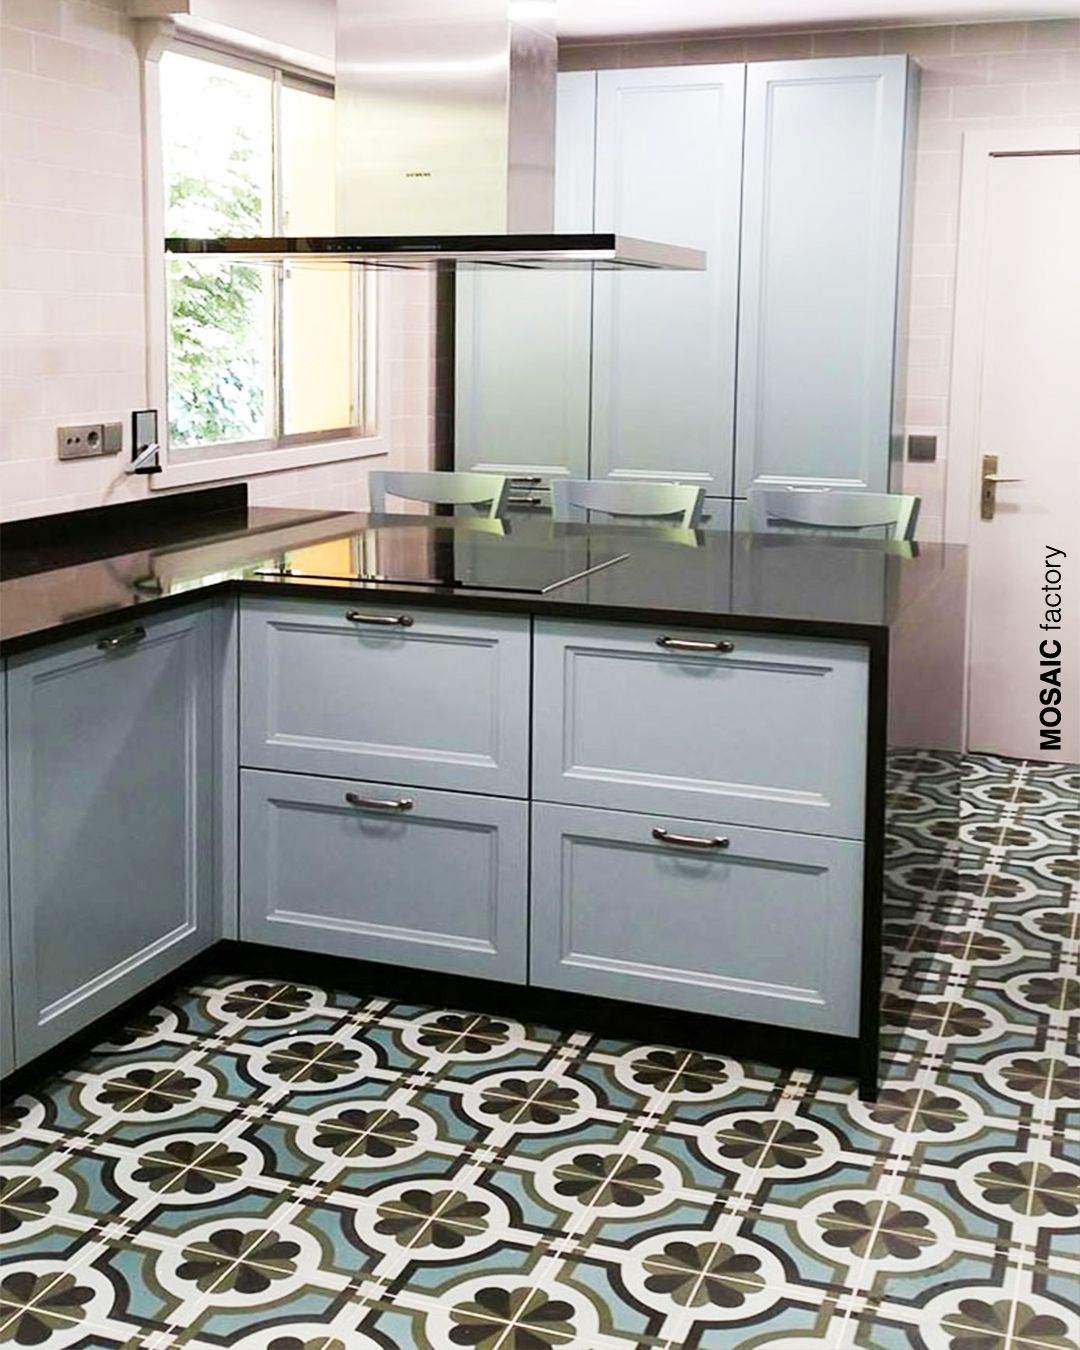 Decorative Kitchen Floor Tiles With A Vintage Pattern In Muted